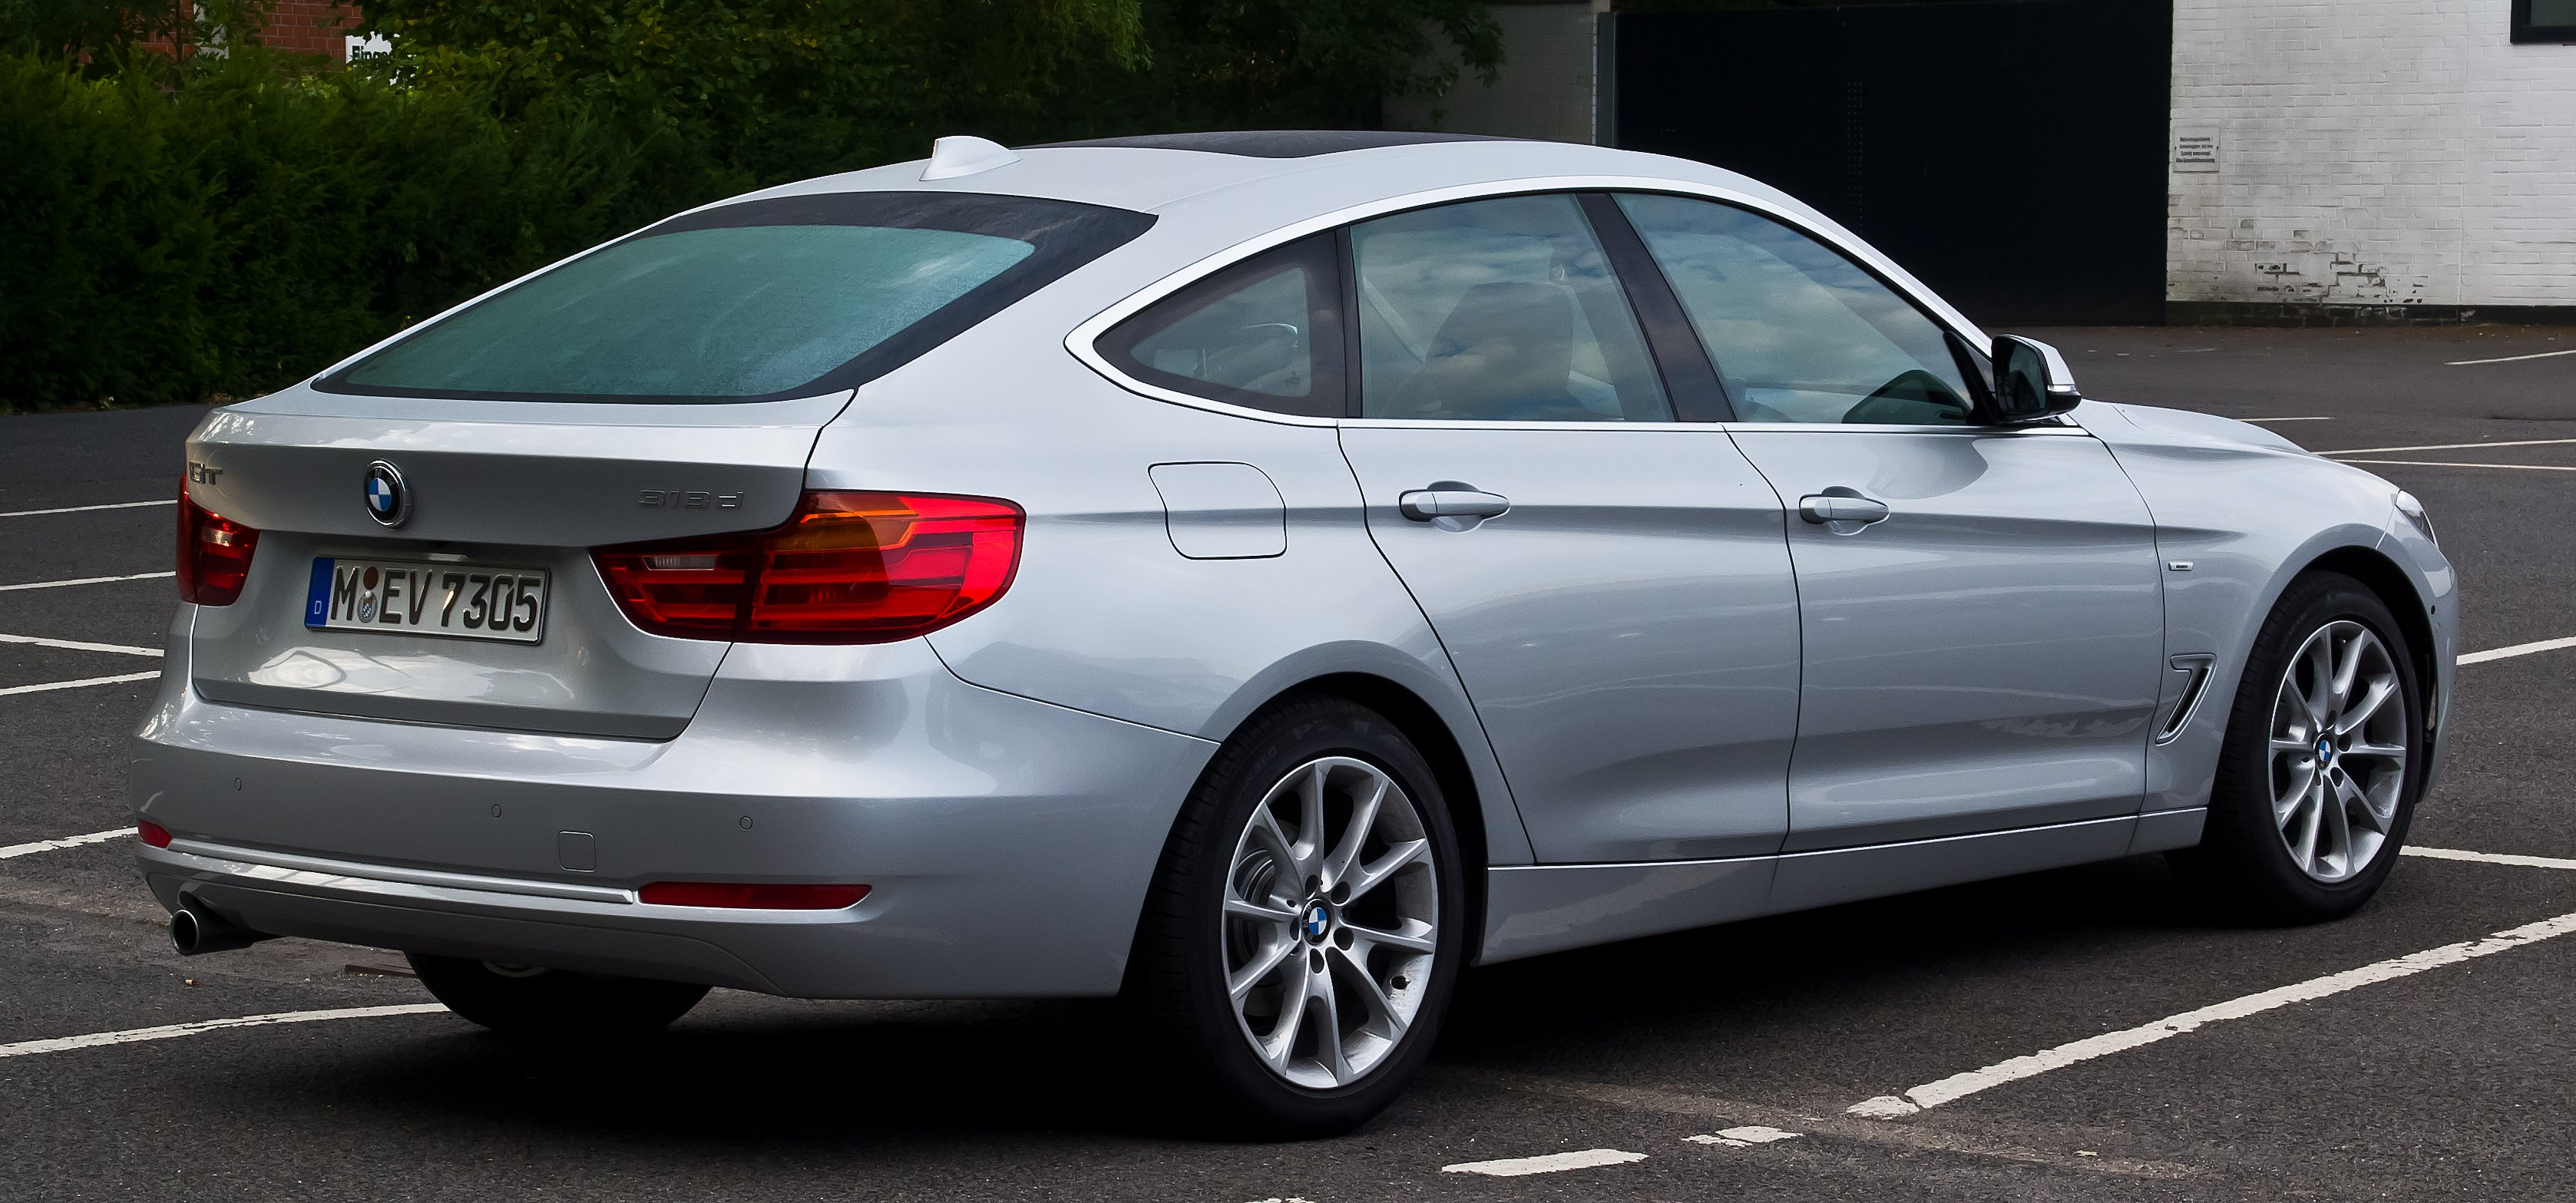 2014 bmw 3 series gran turismo f34 pictures information and specs auto. Black Bedroom Furniture Sets. Home Design Ideas